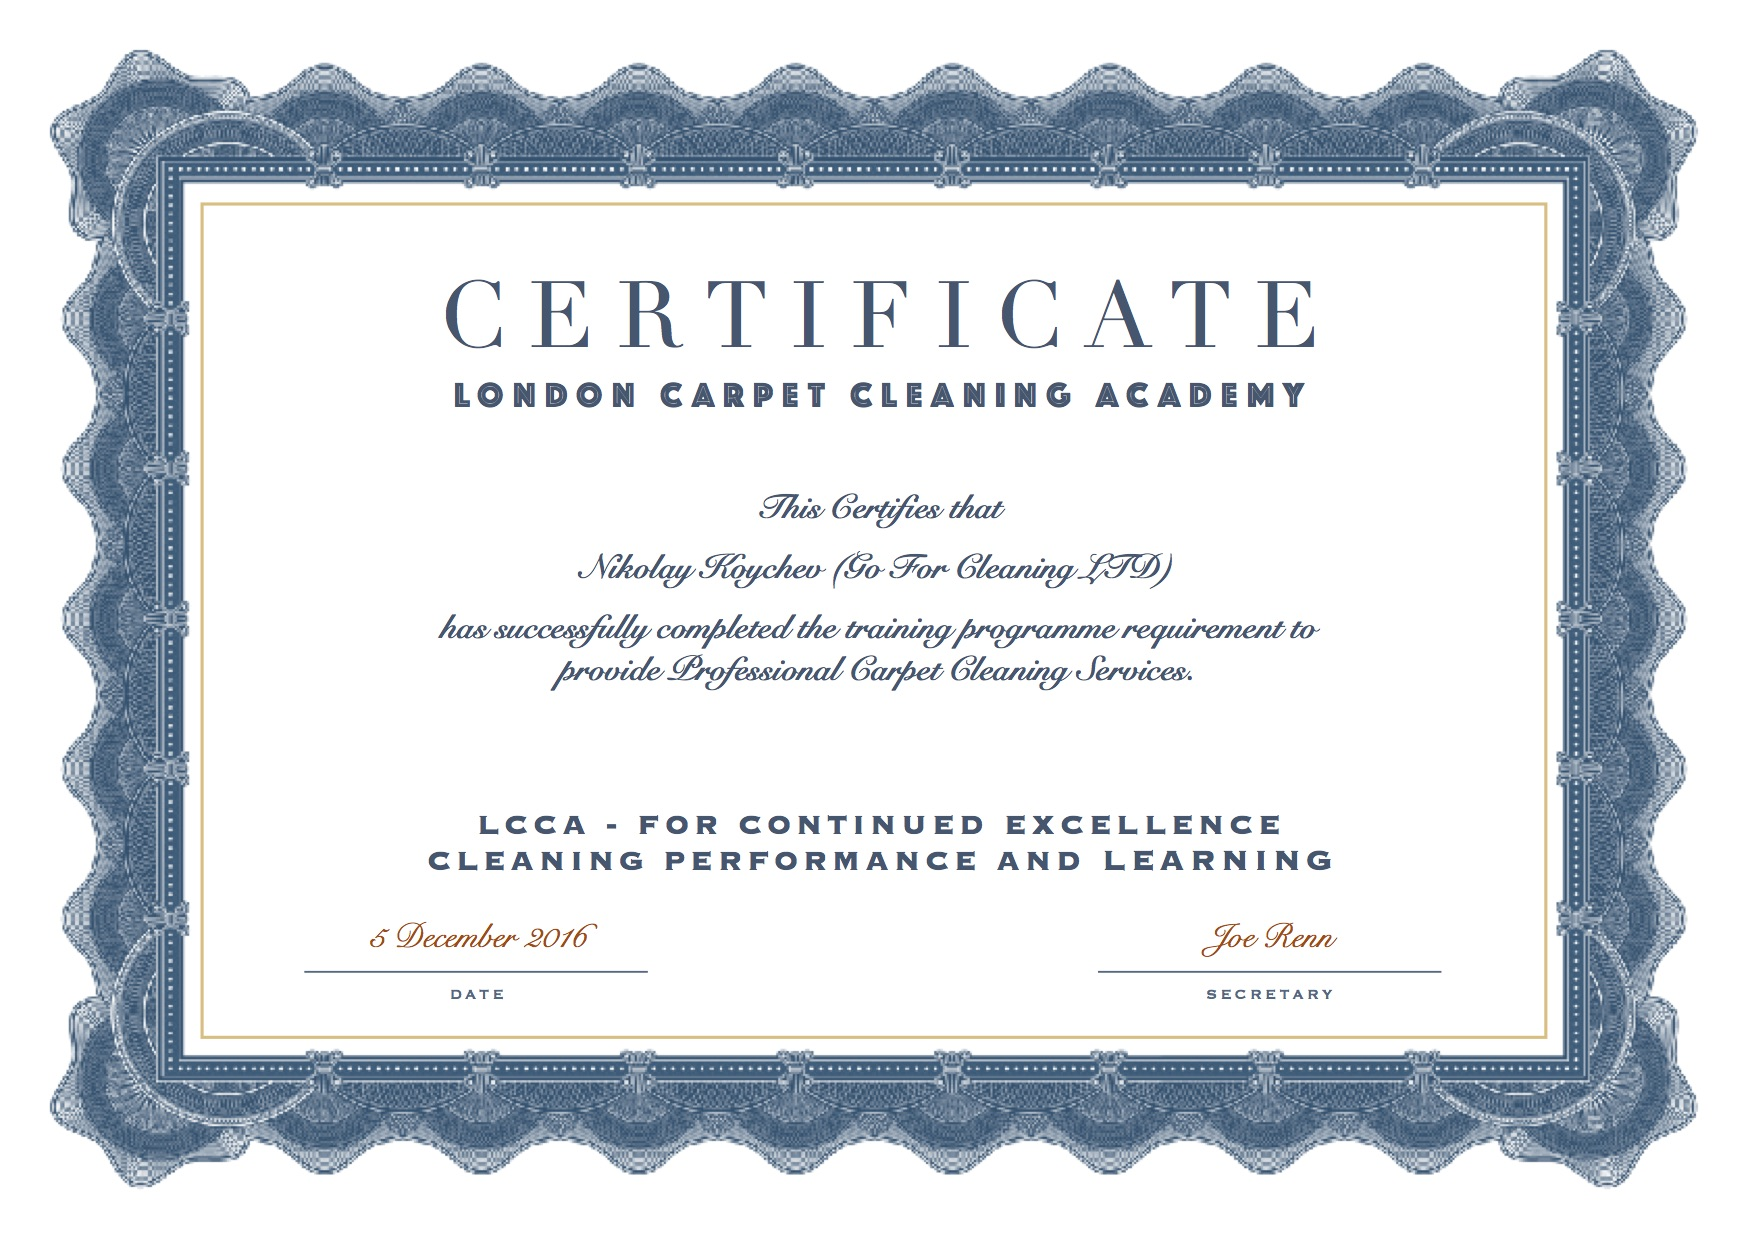 local carpet cleaners in Clapham, London